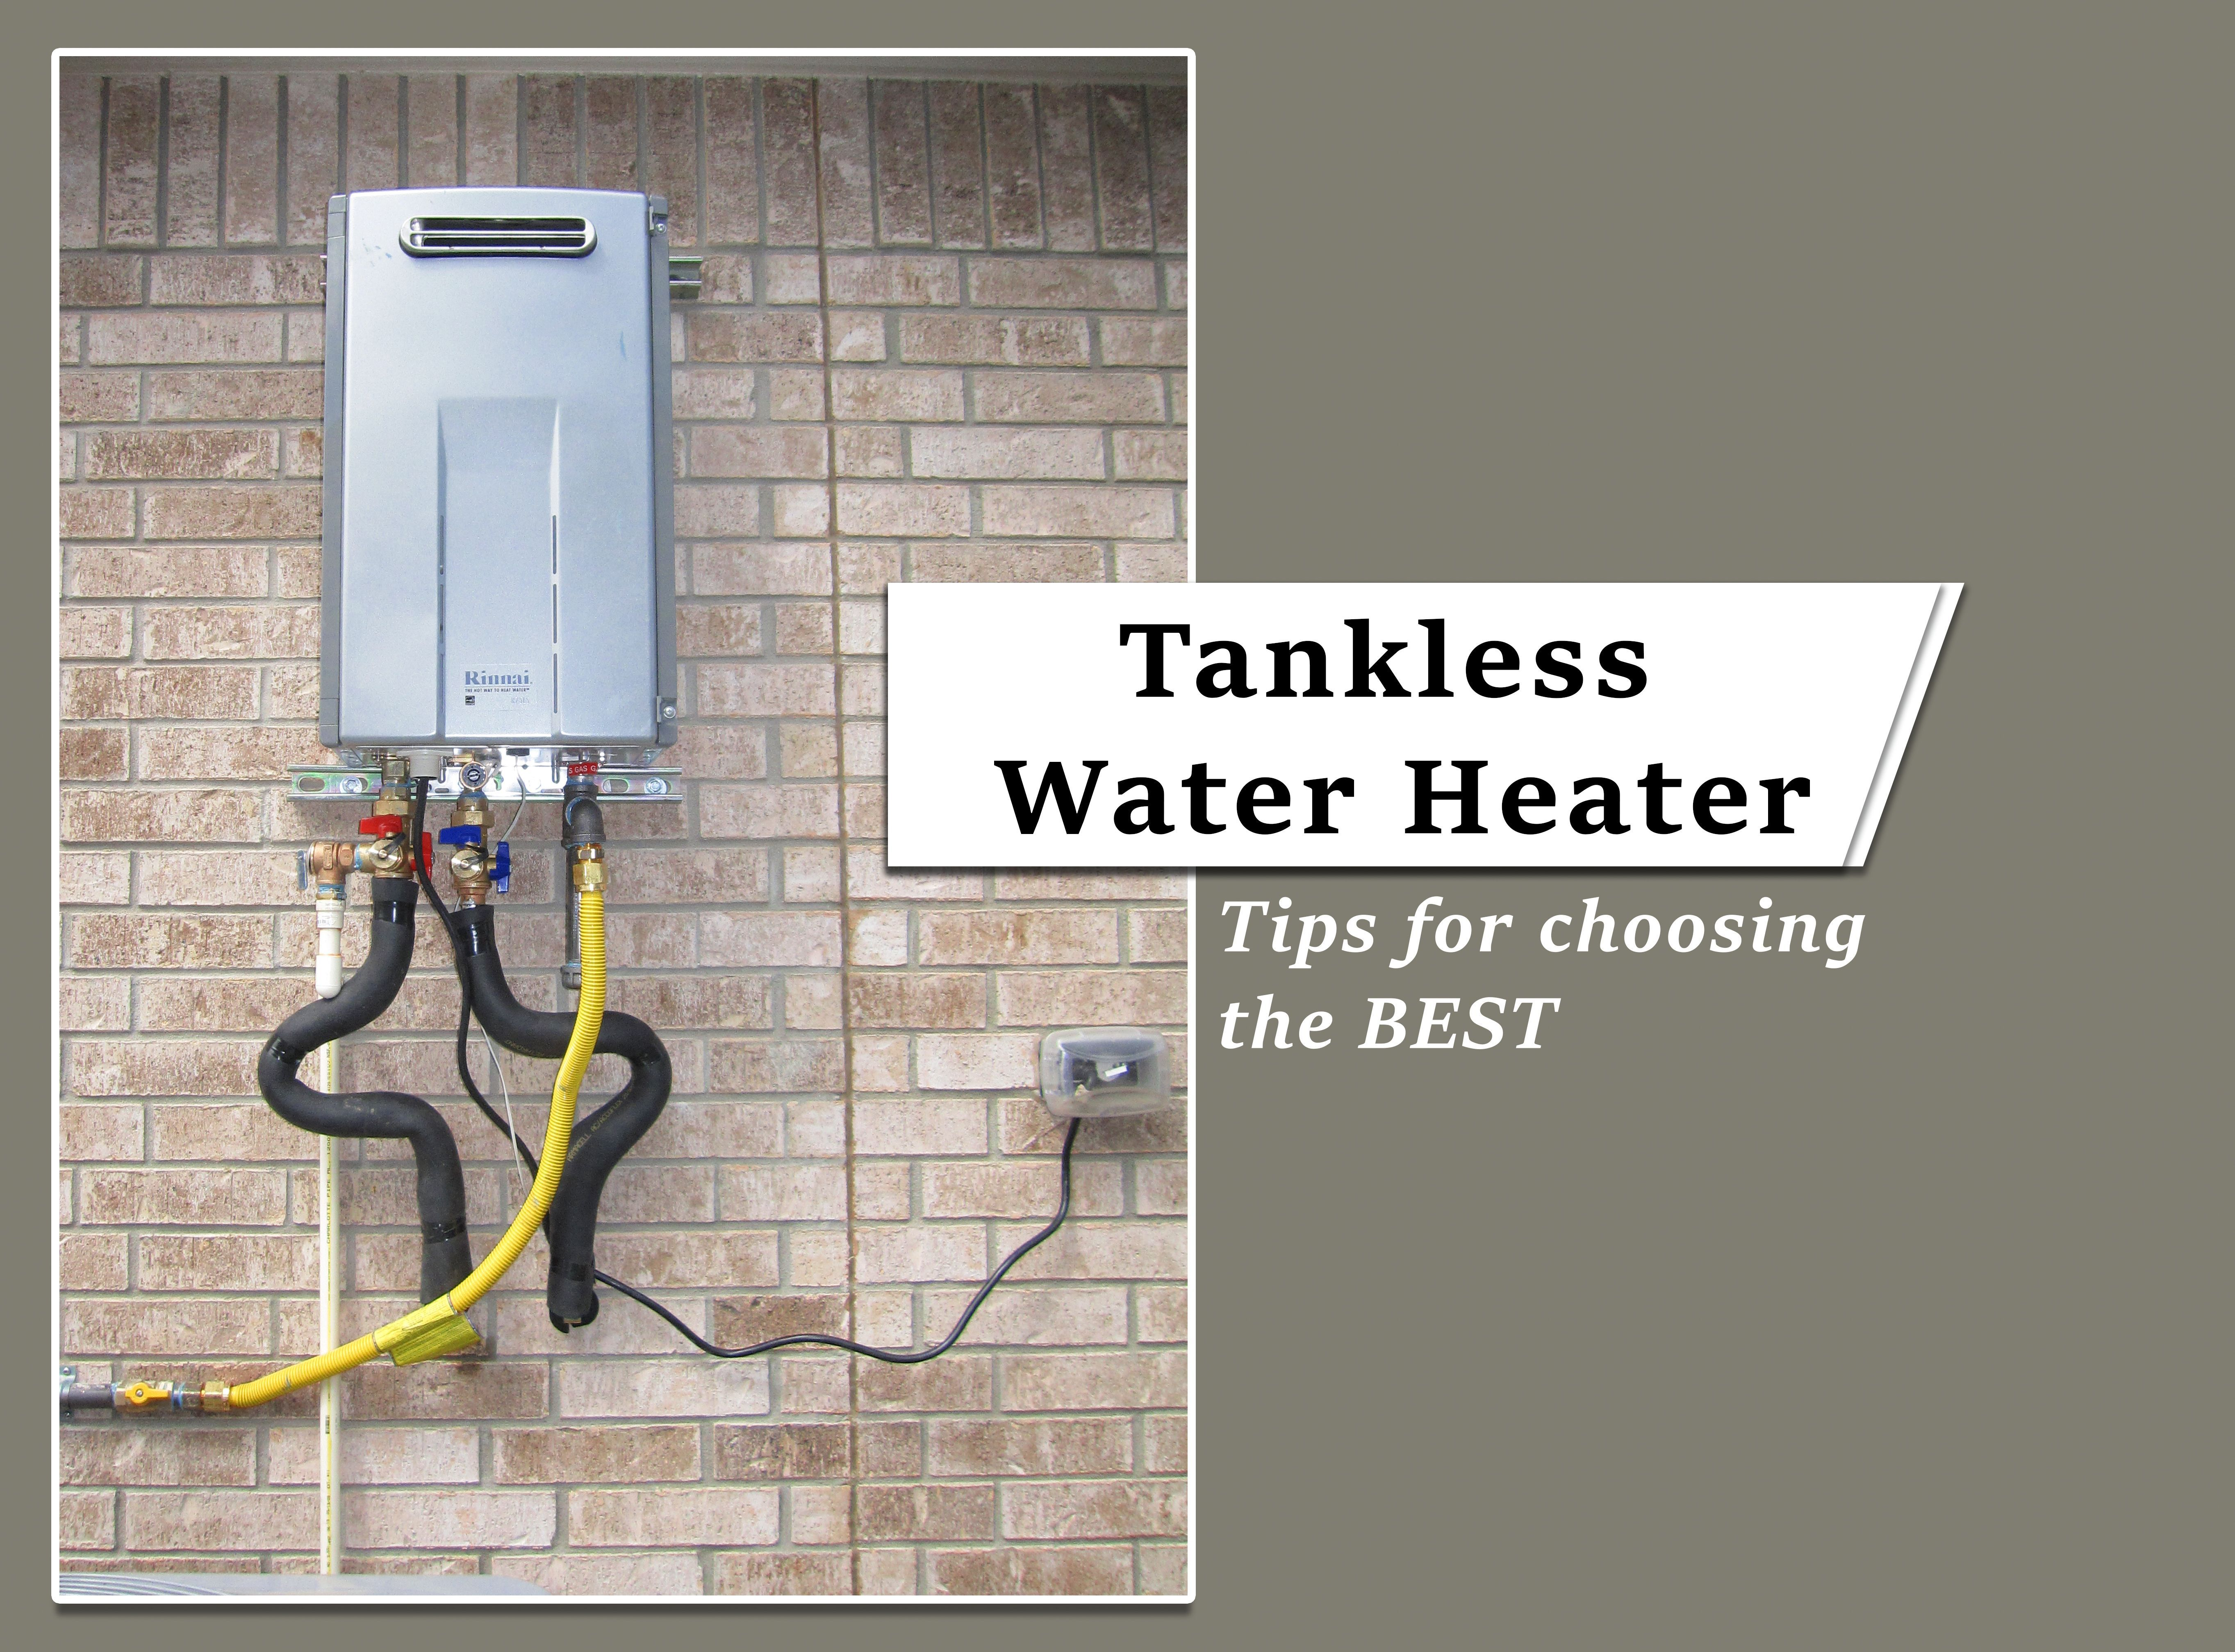 How To Choose The Best Tankless Water Heater For Your Home In 2020 Tankless Water Heater Water Heater Water Heater Installation